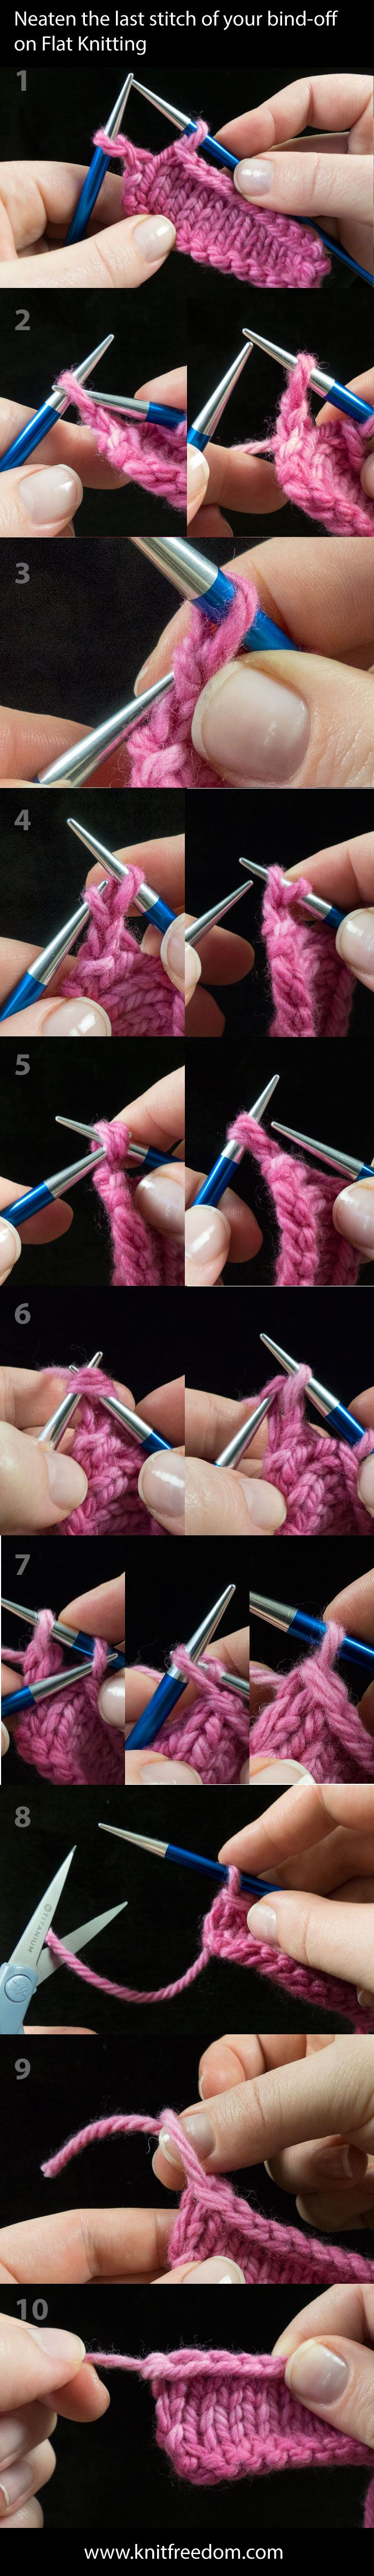 Neaten the last stitch of your bind-off on flat knitting - such a simple idea  what a difference it can make